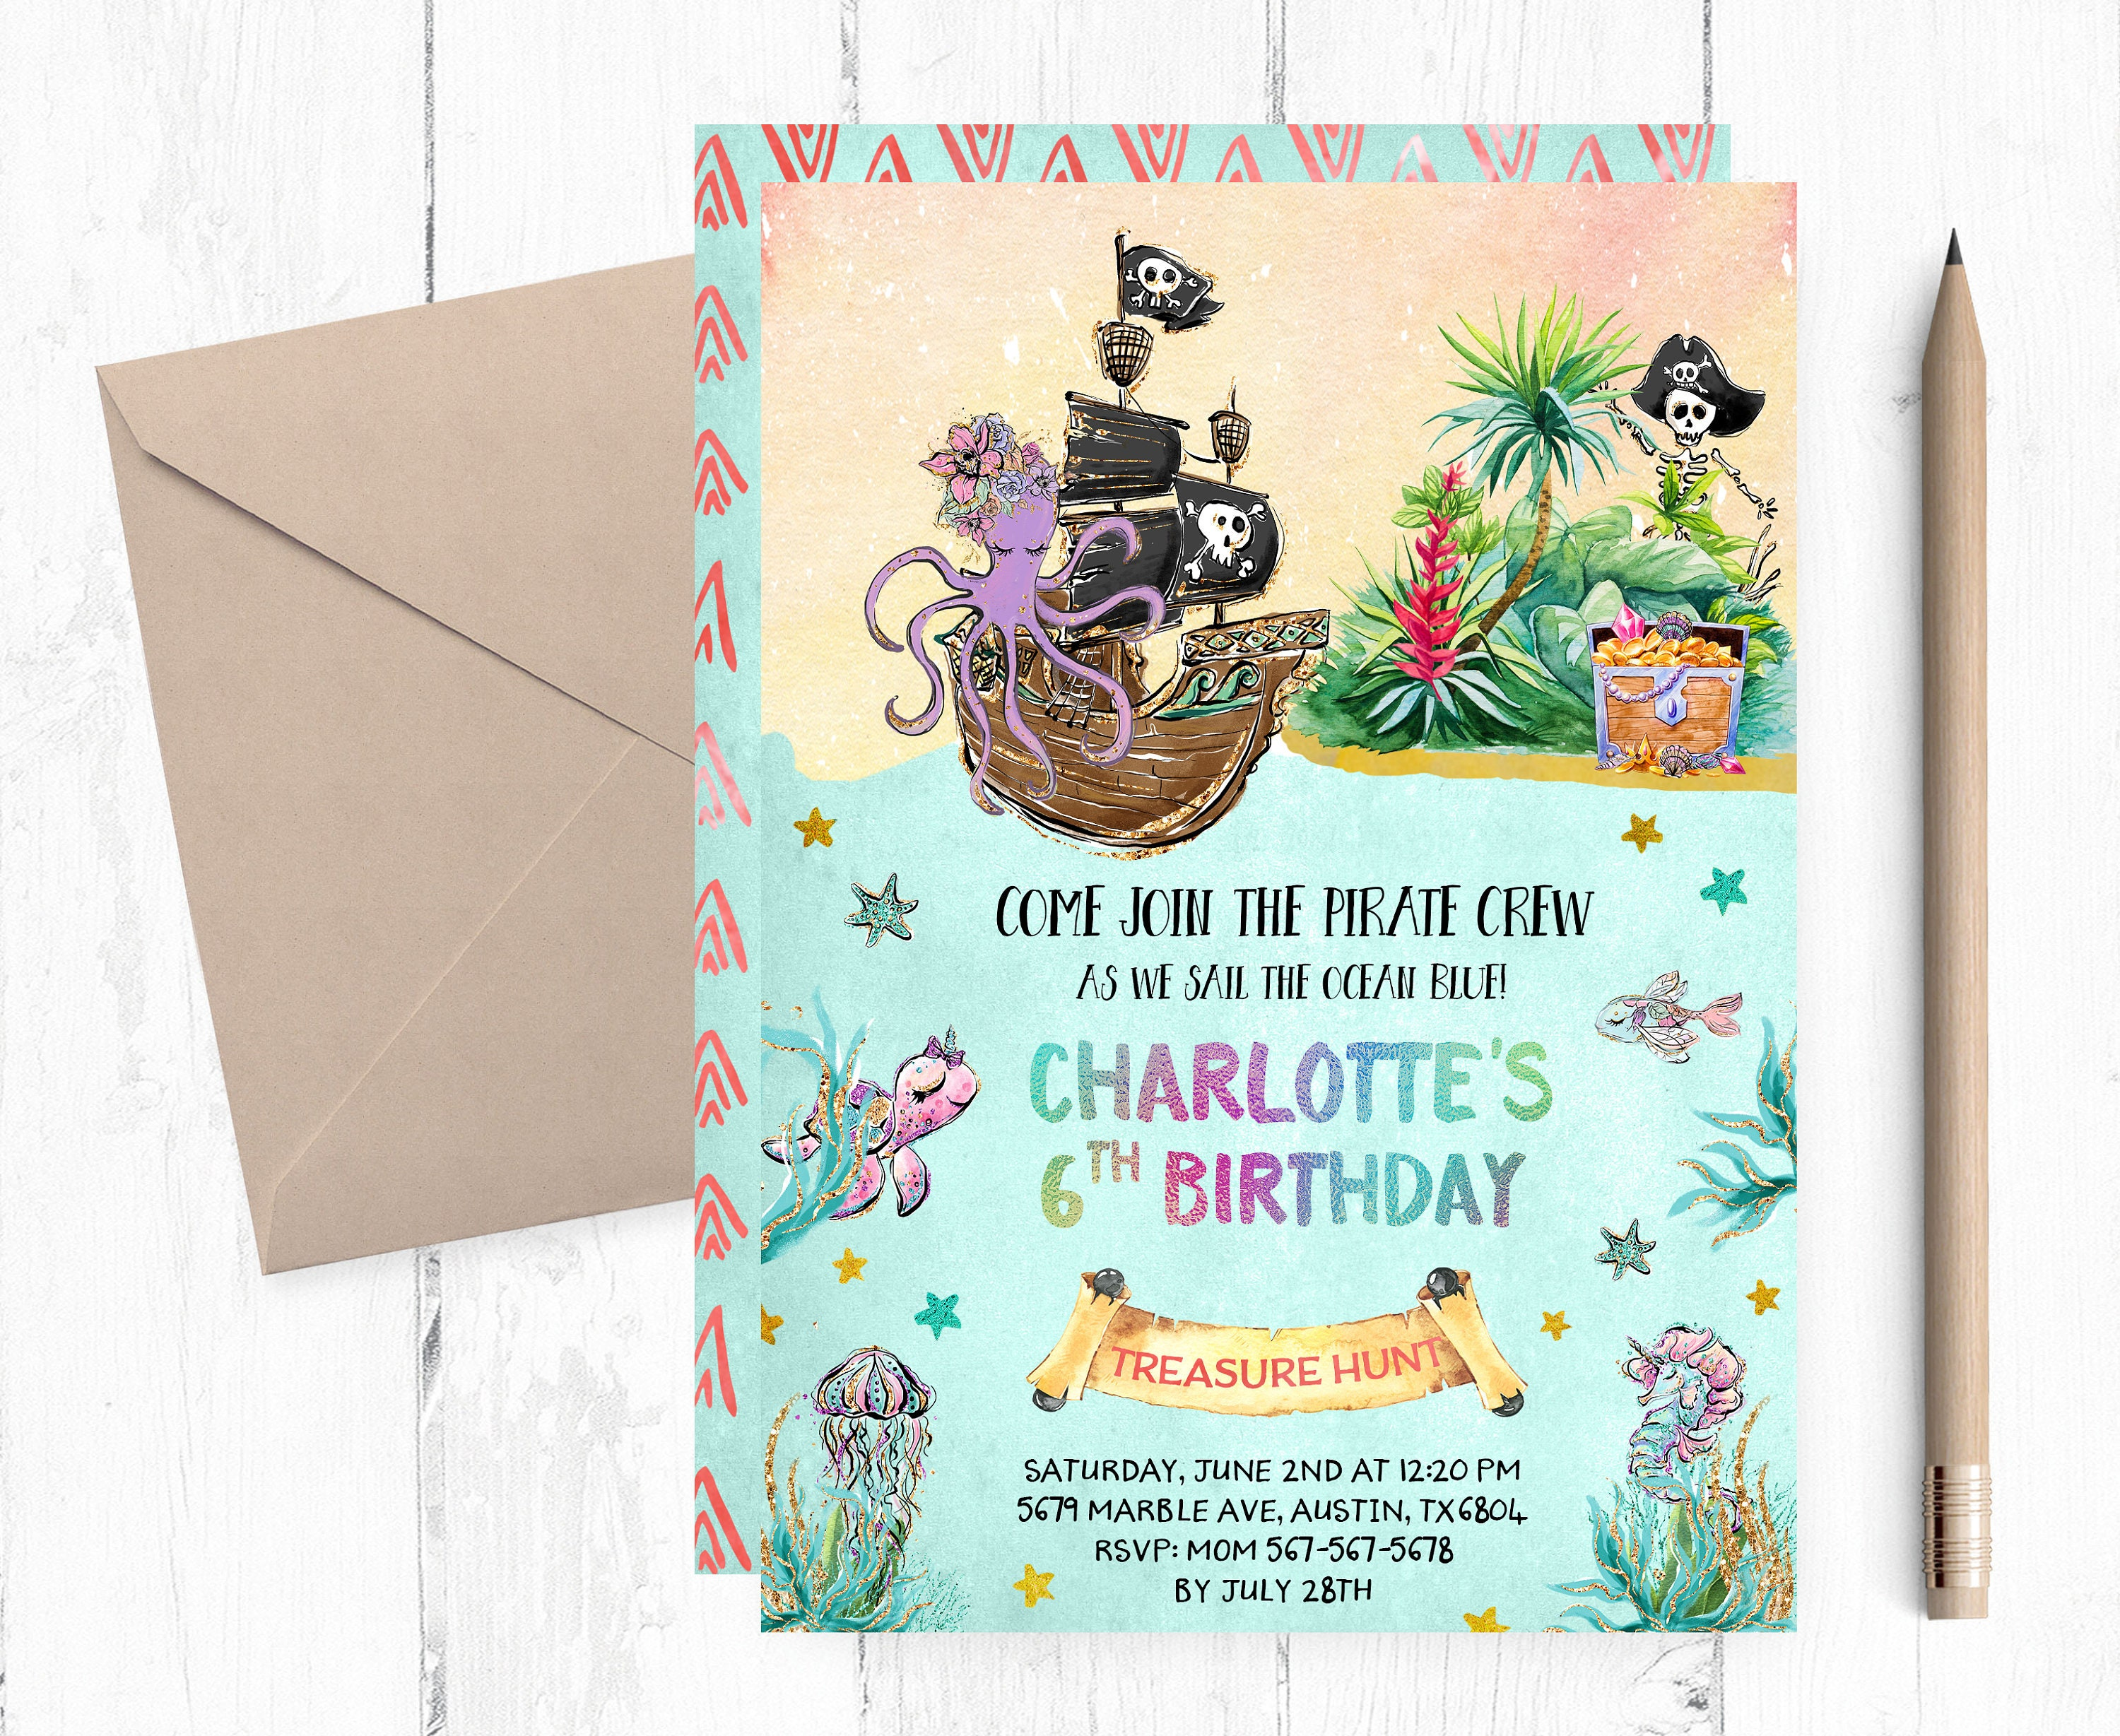 Treasure Hunt Invitation Pirate Birthday Party Invitation Etsy